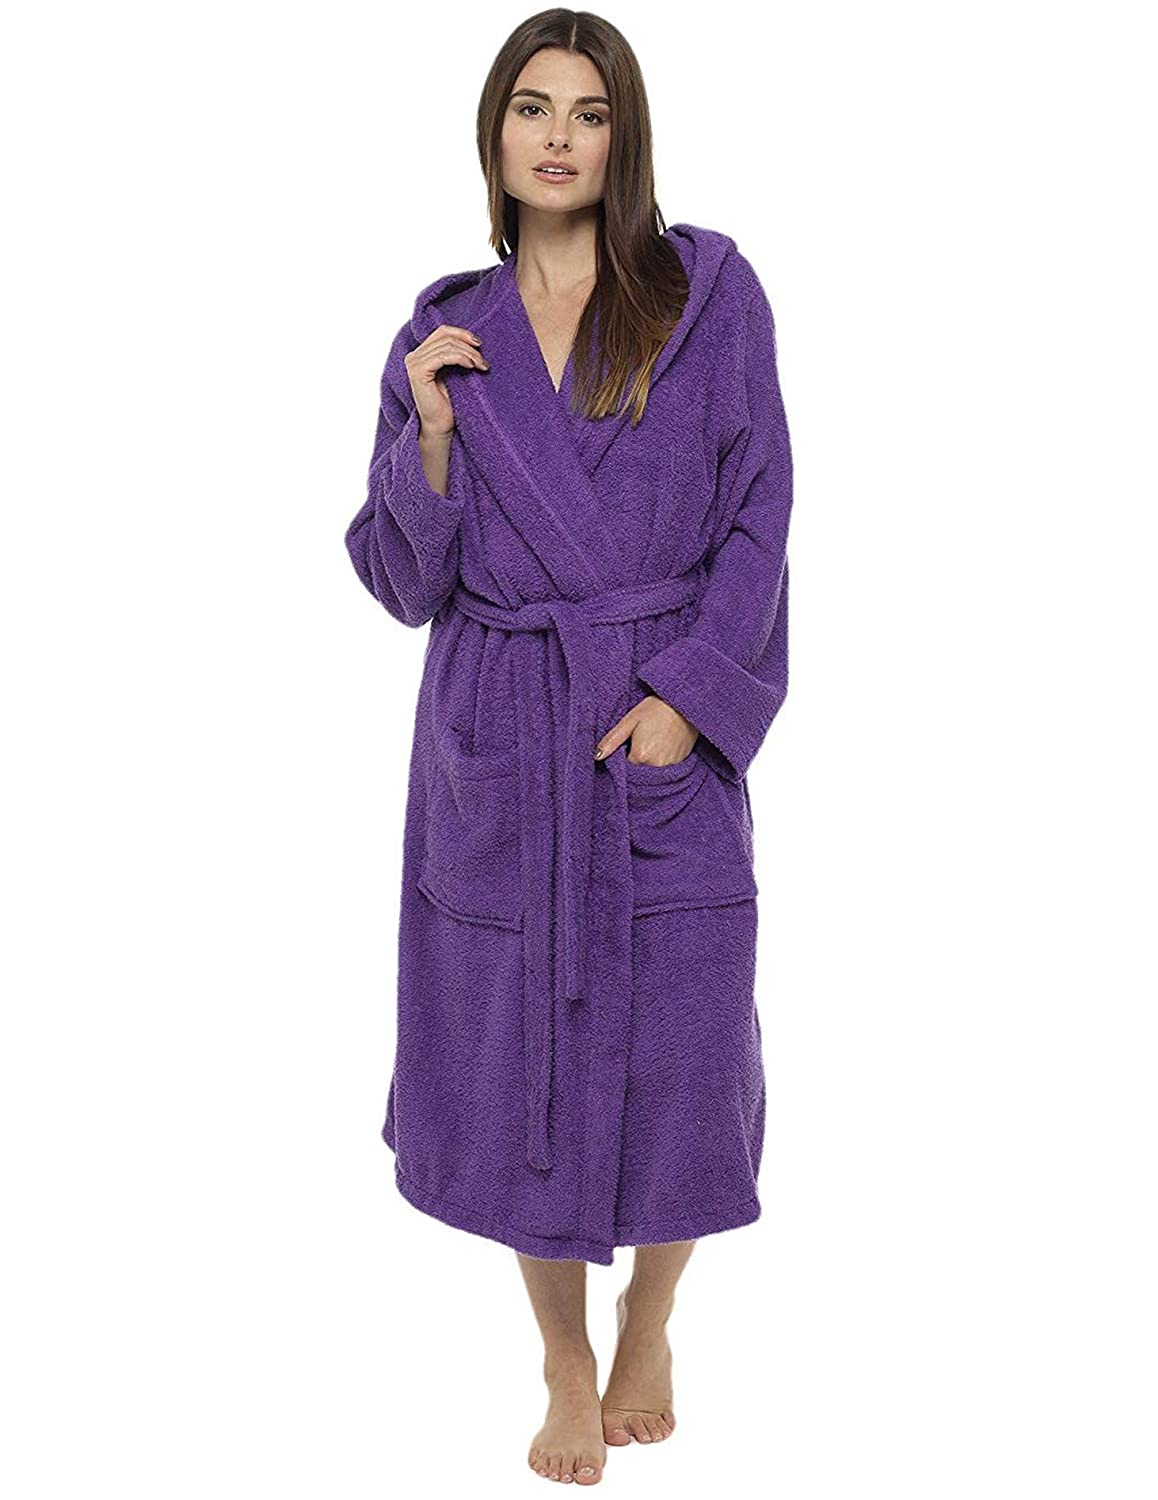 Ladies Robe Luxury Terry Towelling Cotton Dressing Gown Bathrobe ...